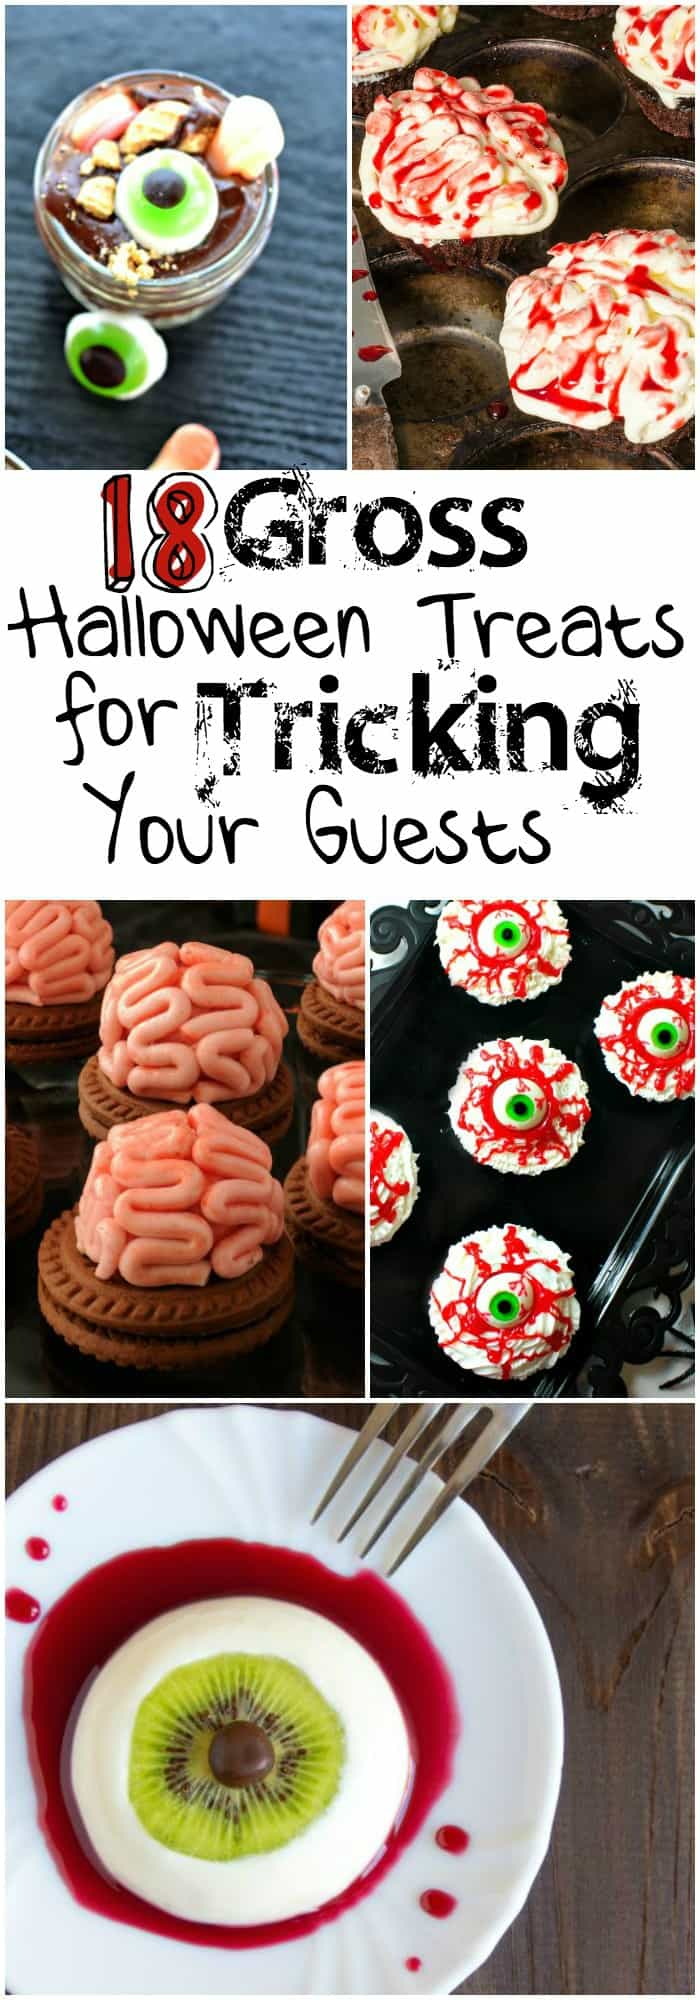 I love these gross halloween treats...the kids are going to enjoy them so much!